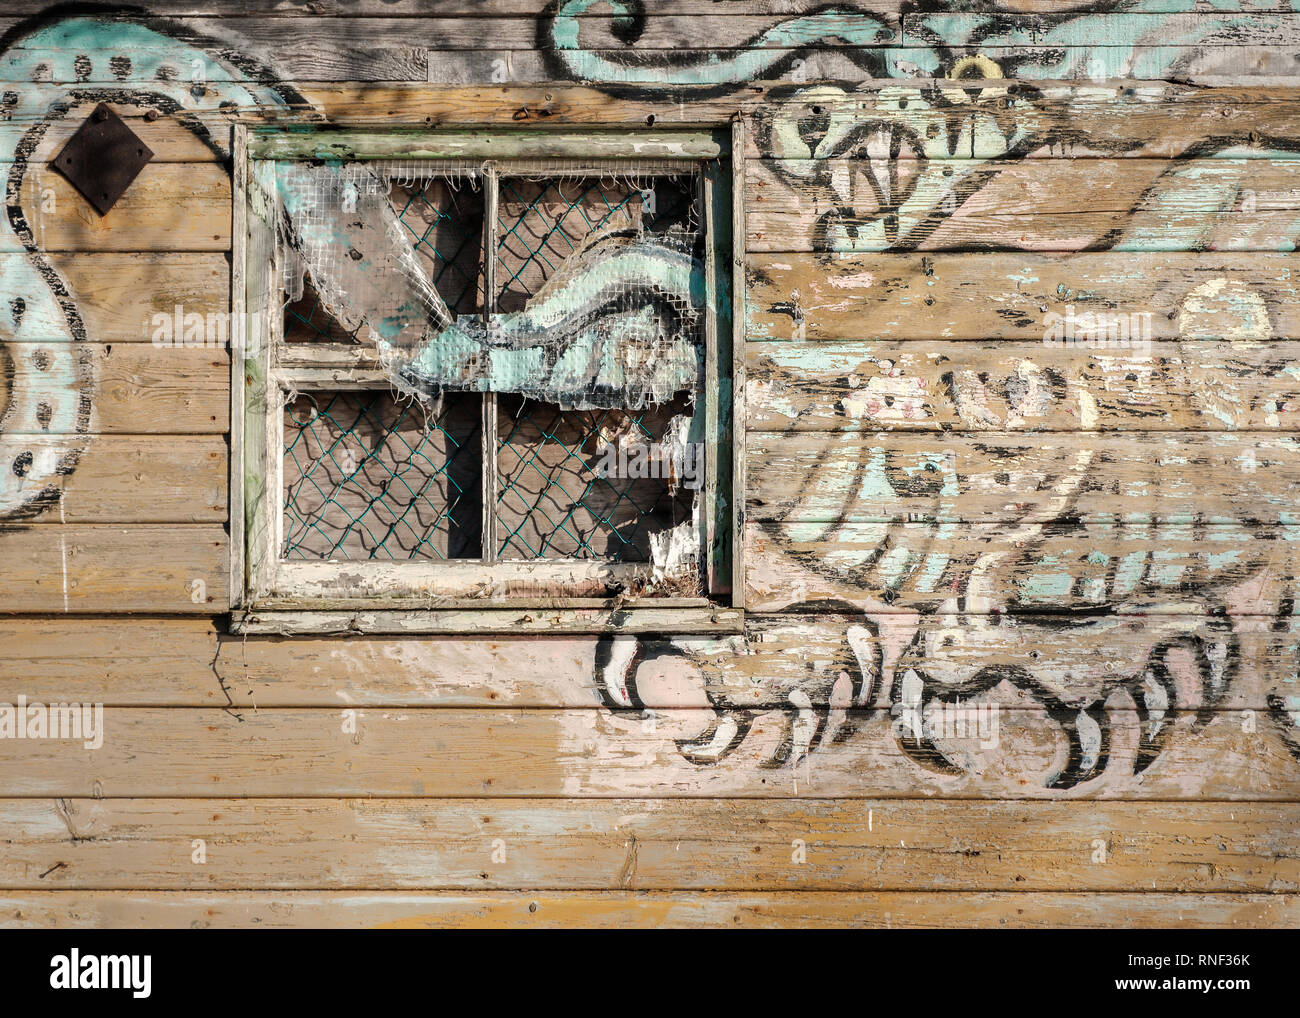 The side of an old and abandoned gypsy caravan with a dragon painting on the side of it, on the shores of Loch Ness, Scotland - Stock Image